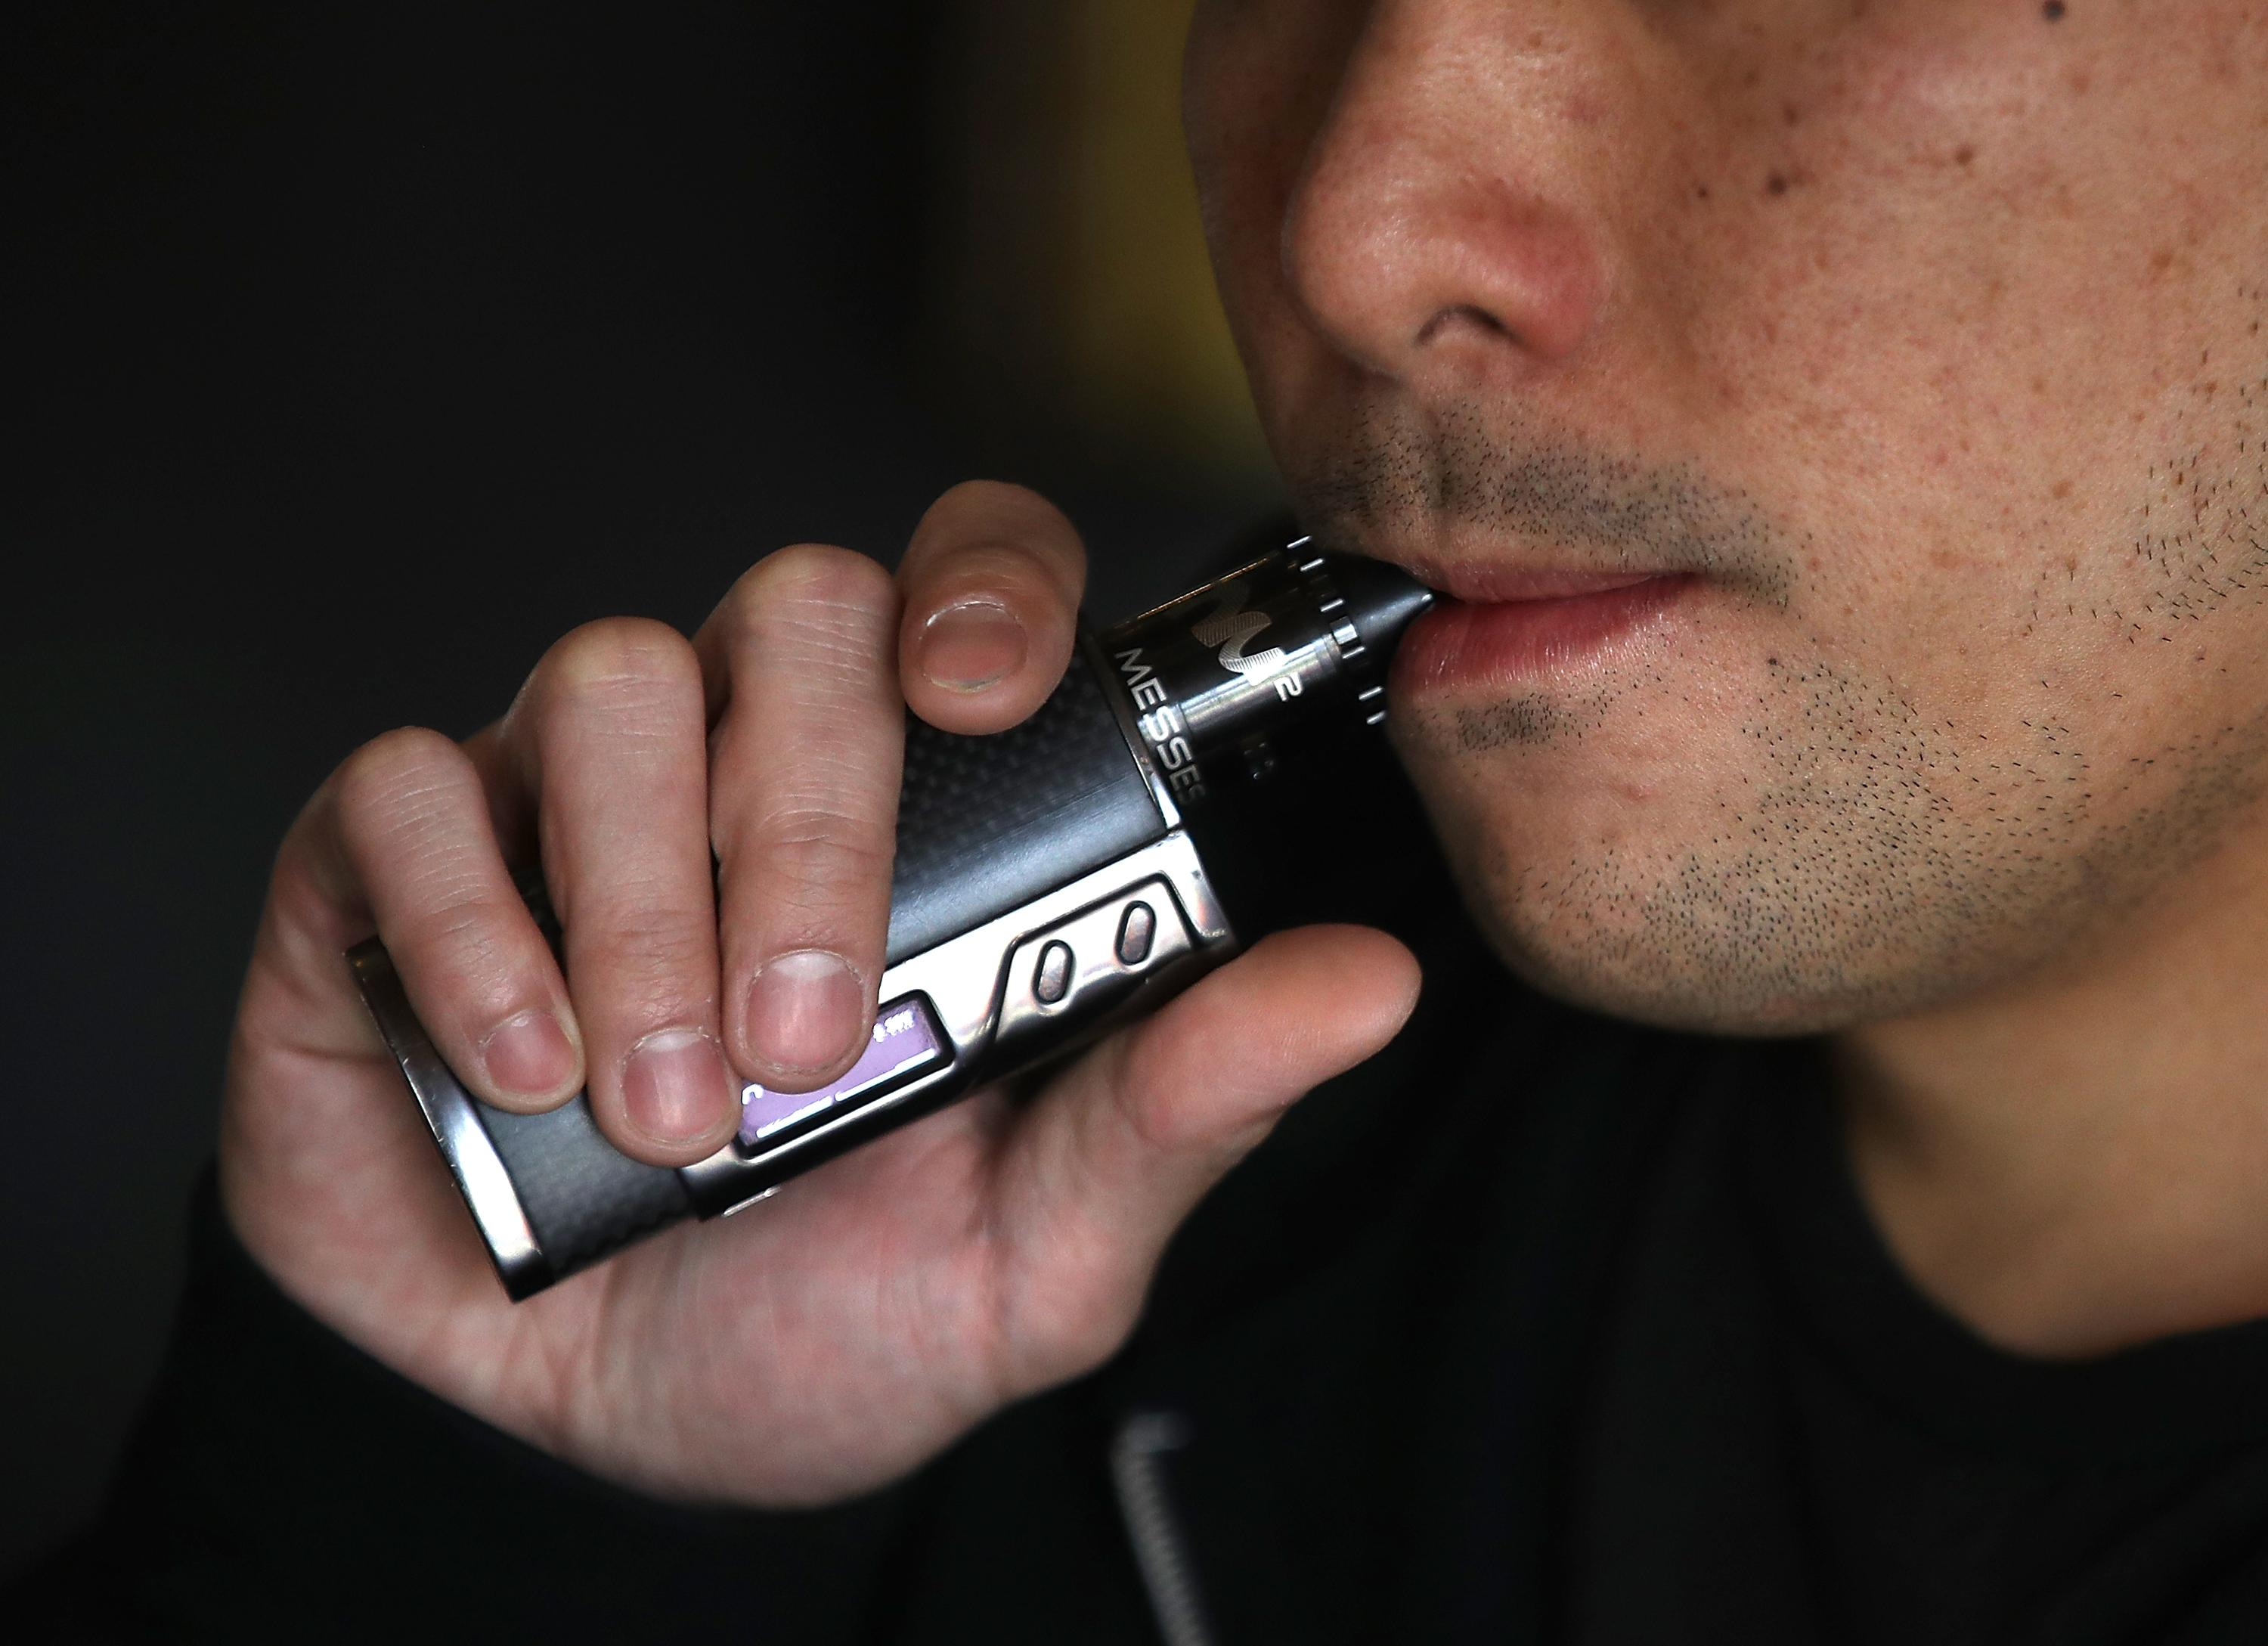 TV Producer Dies After E-Cigarette Explodes, Lodges in His Skull